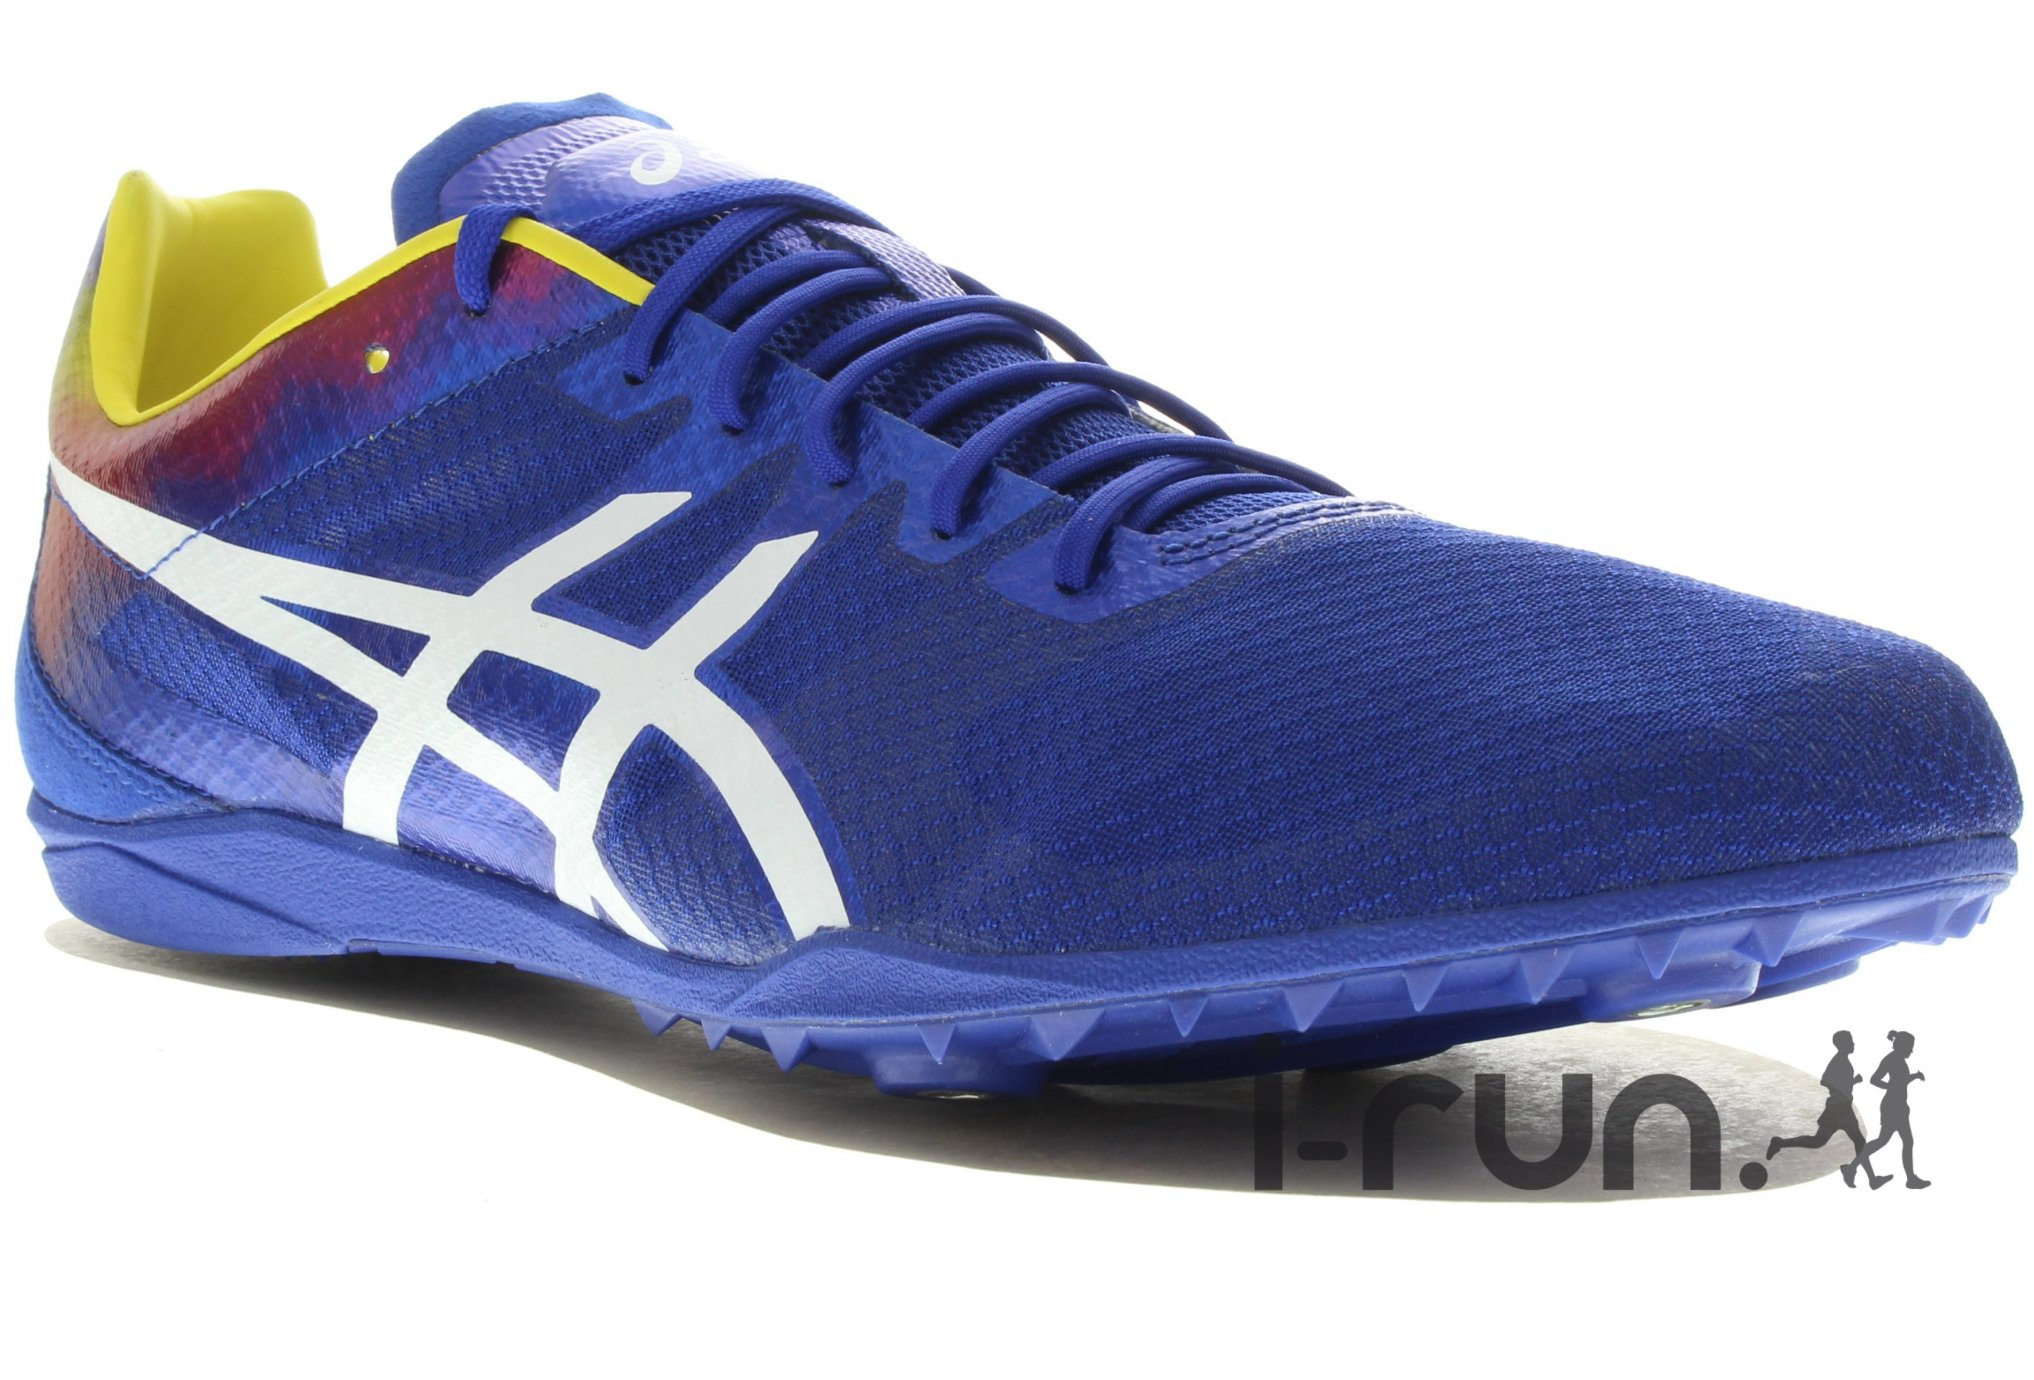 Asics Cosmoracer ld flame m chaussures homme